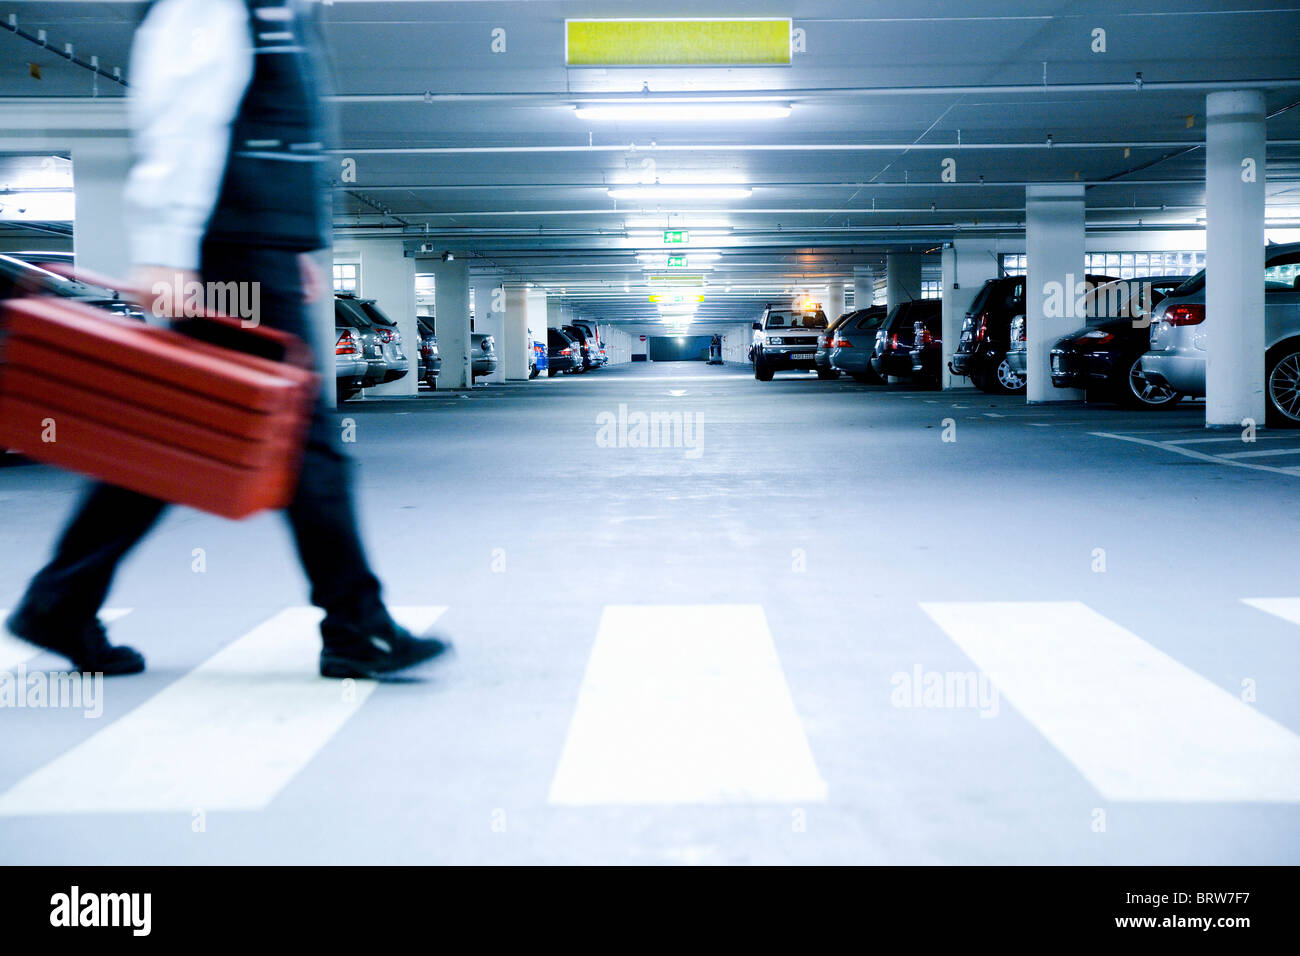 Workman on a zebra-crossing in an underground carpark - Stock Image